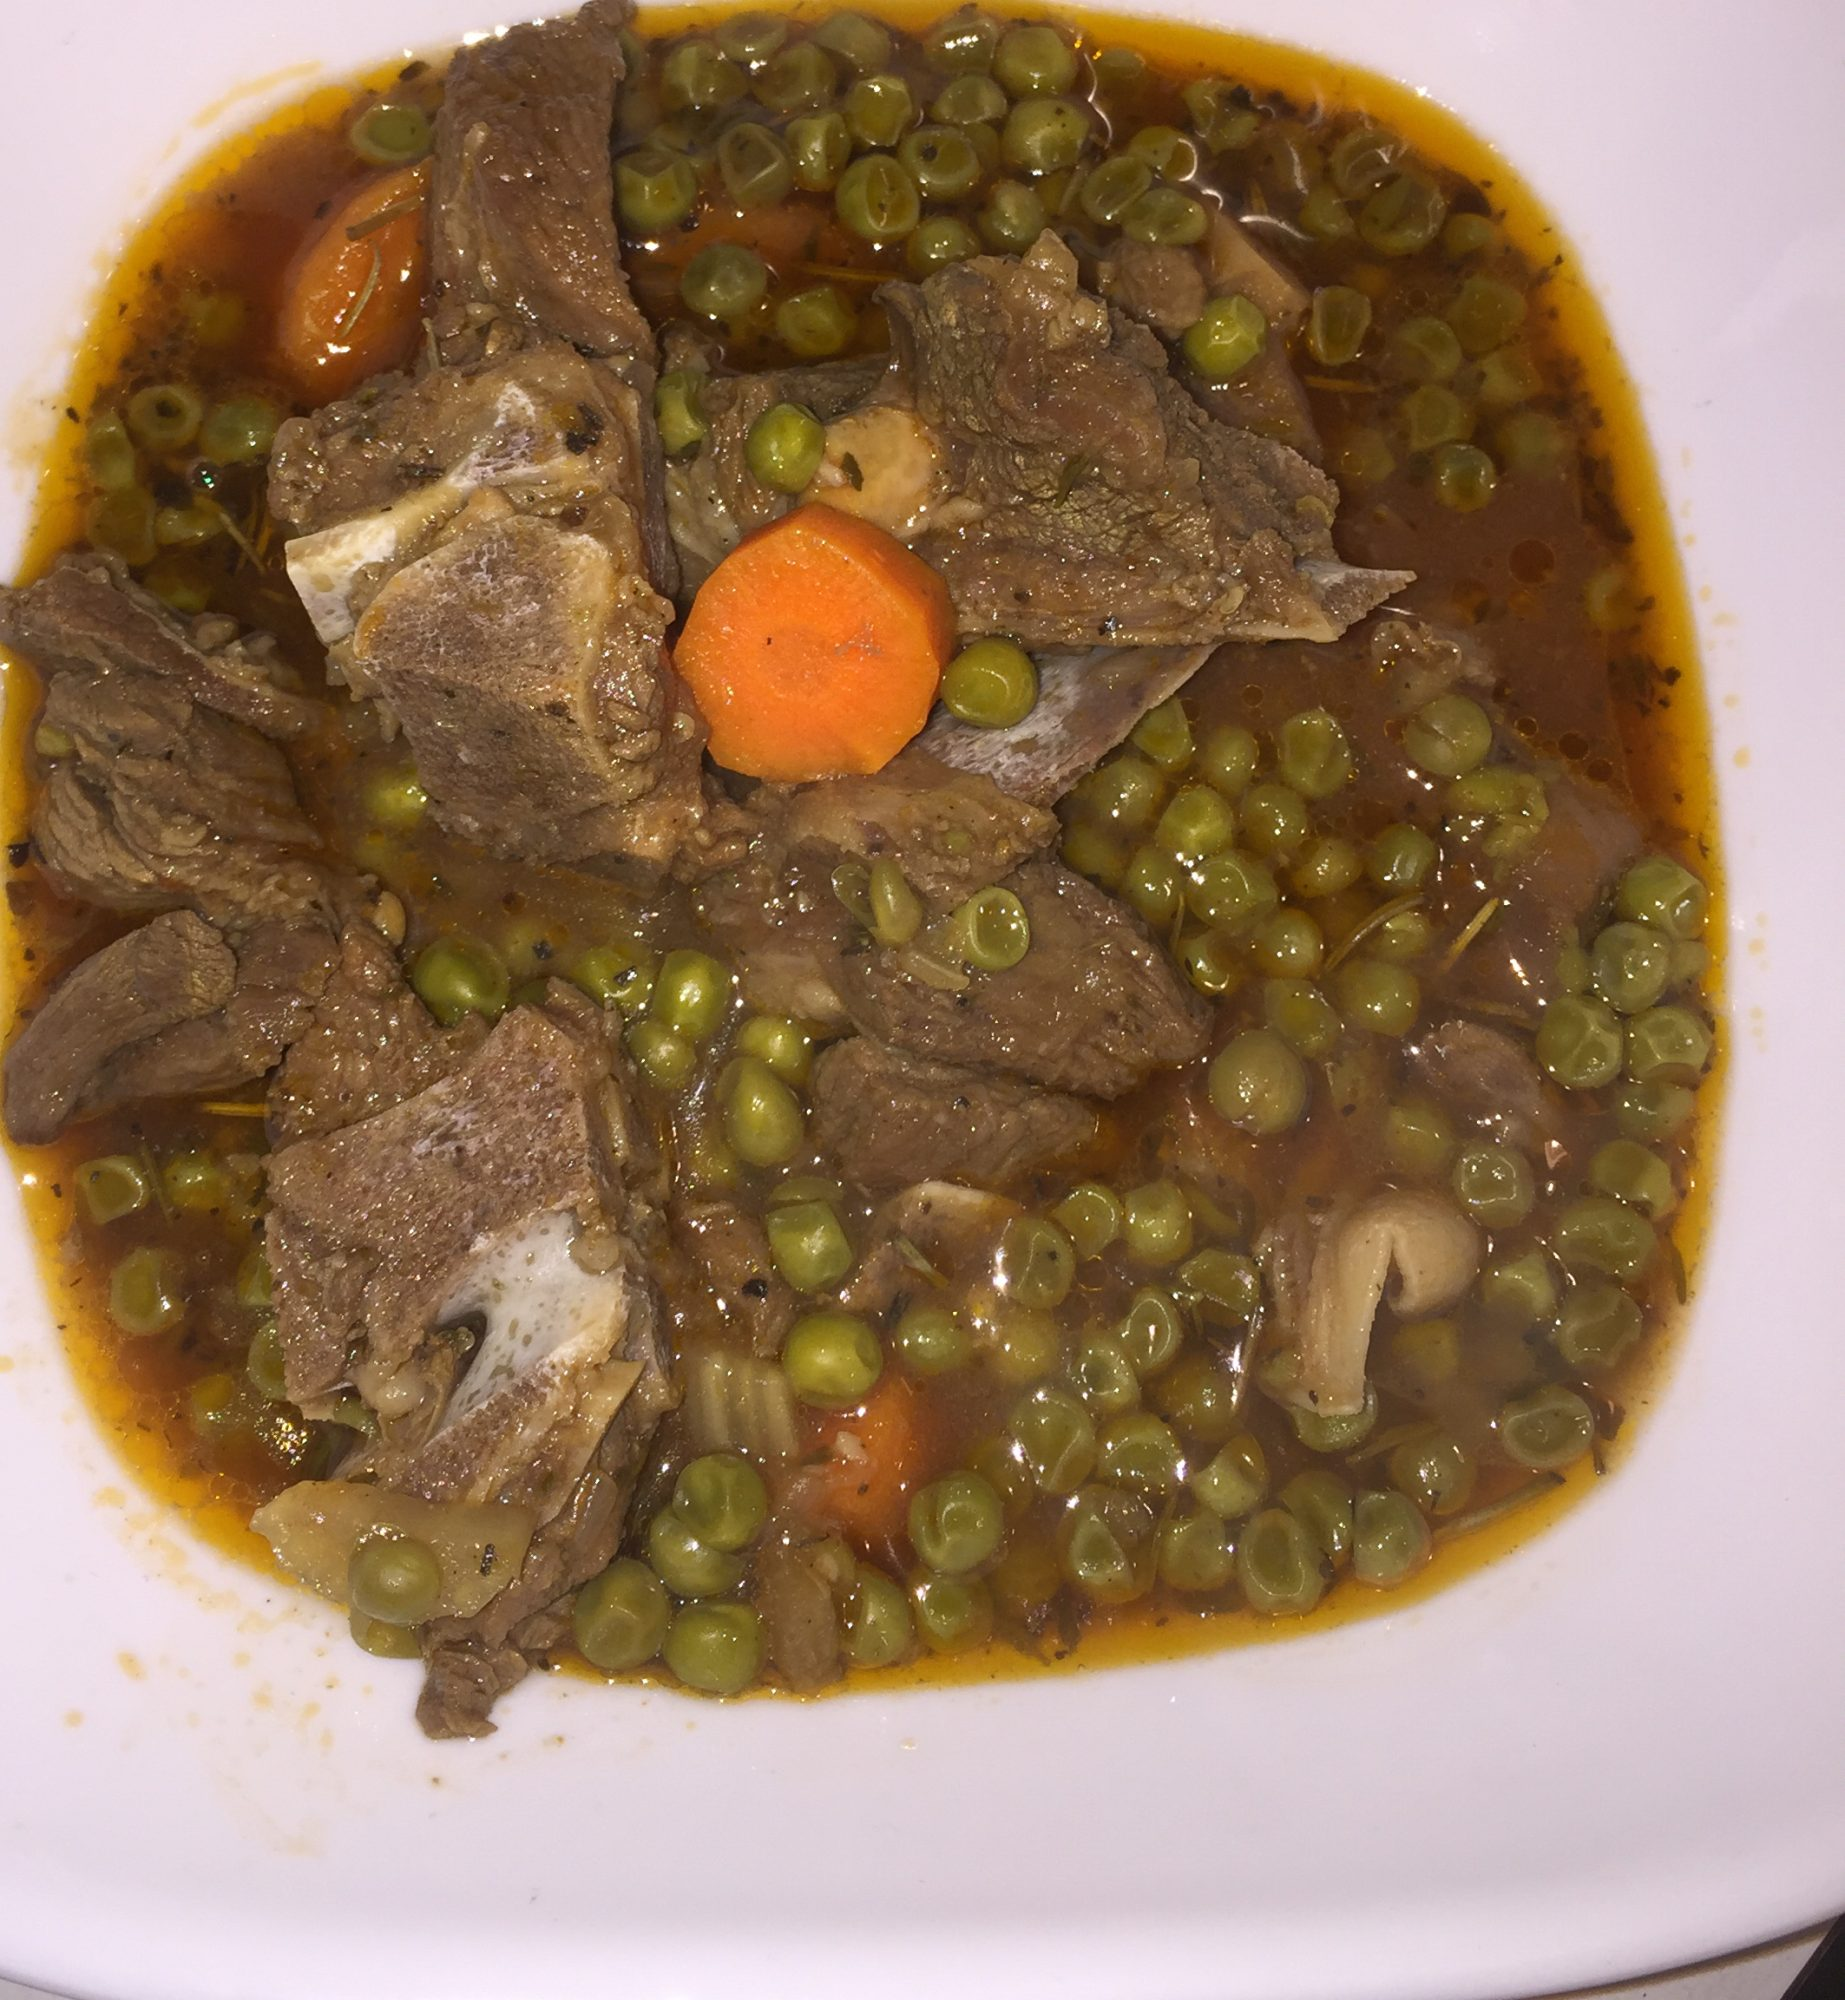 lamb stew with green peas and carrots